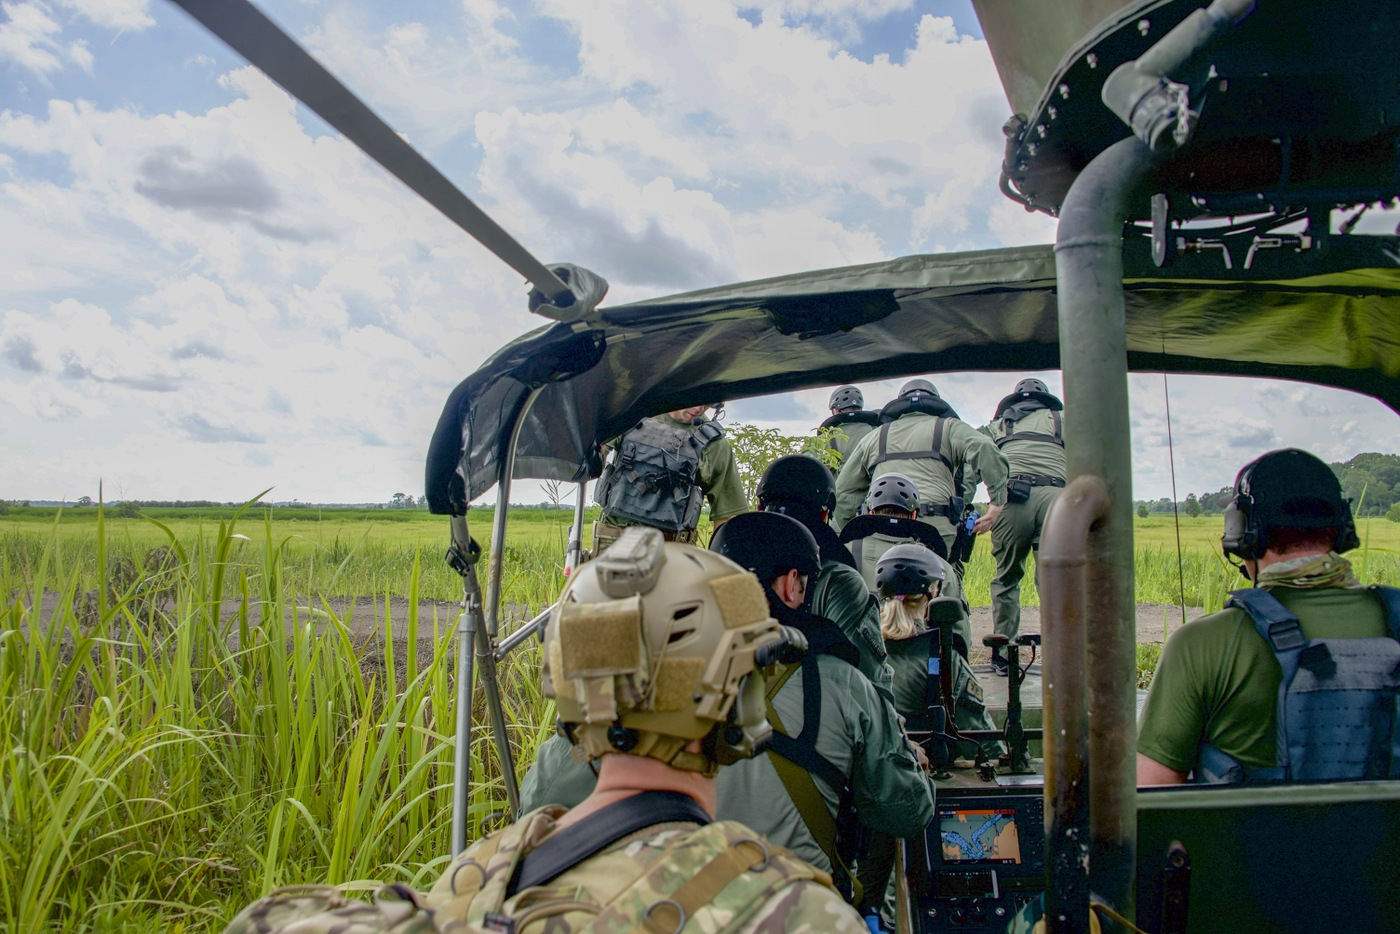 HRT Mobility Team delivers the Charleston County Sheriff's Office SWAT team to a wildlife reserve during a Hostage Rescue Team (HRT) training exercise held August 5-7, 2019, in Charleston, South Carolina.